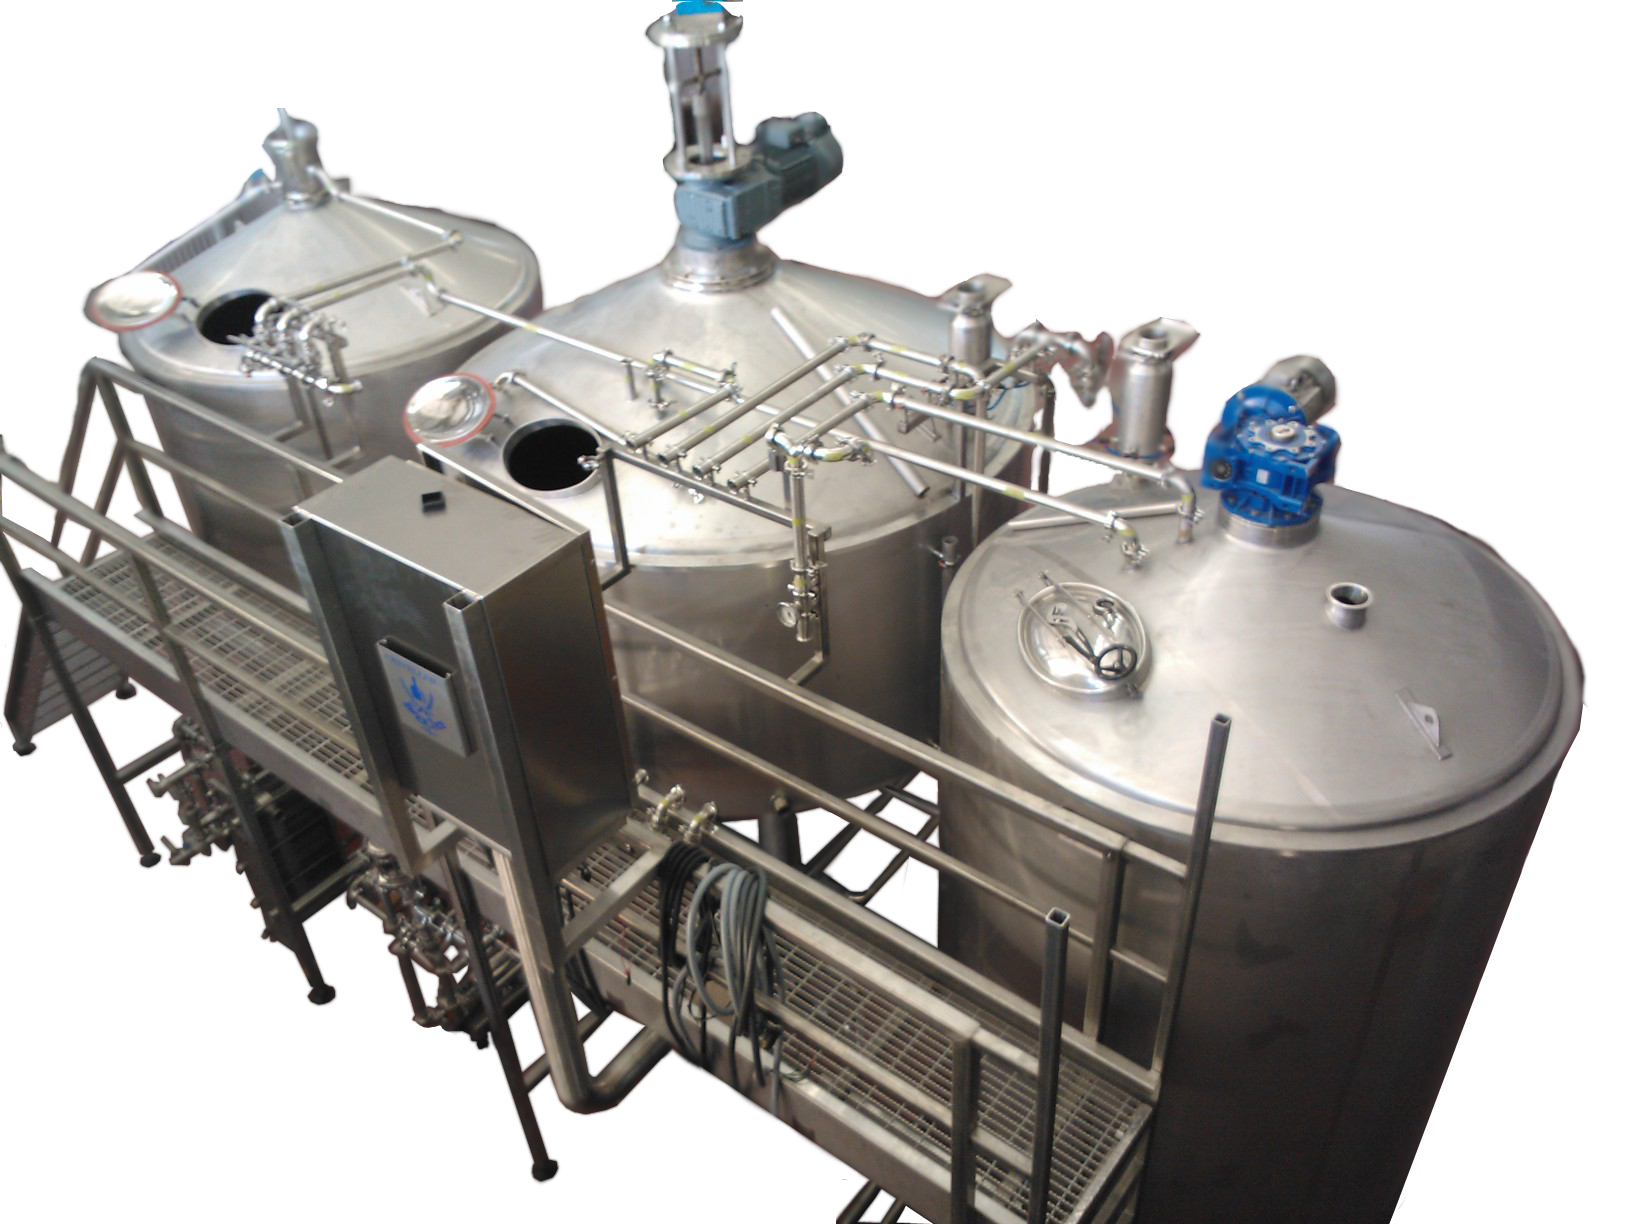 30 Bbl Systems Commercial Beer Brewing Equipment